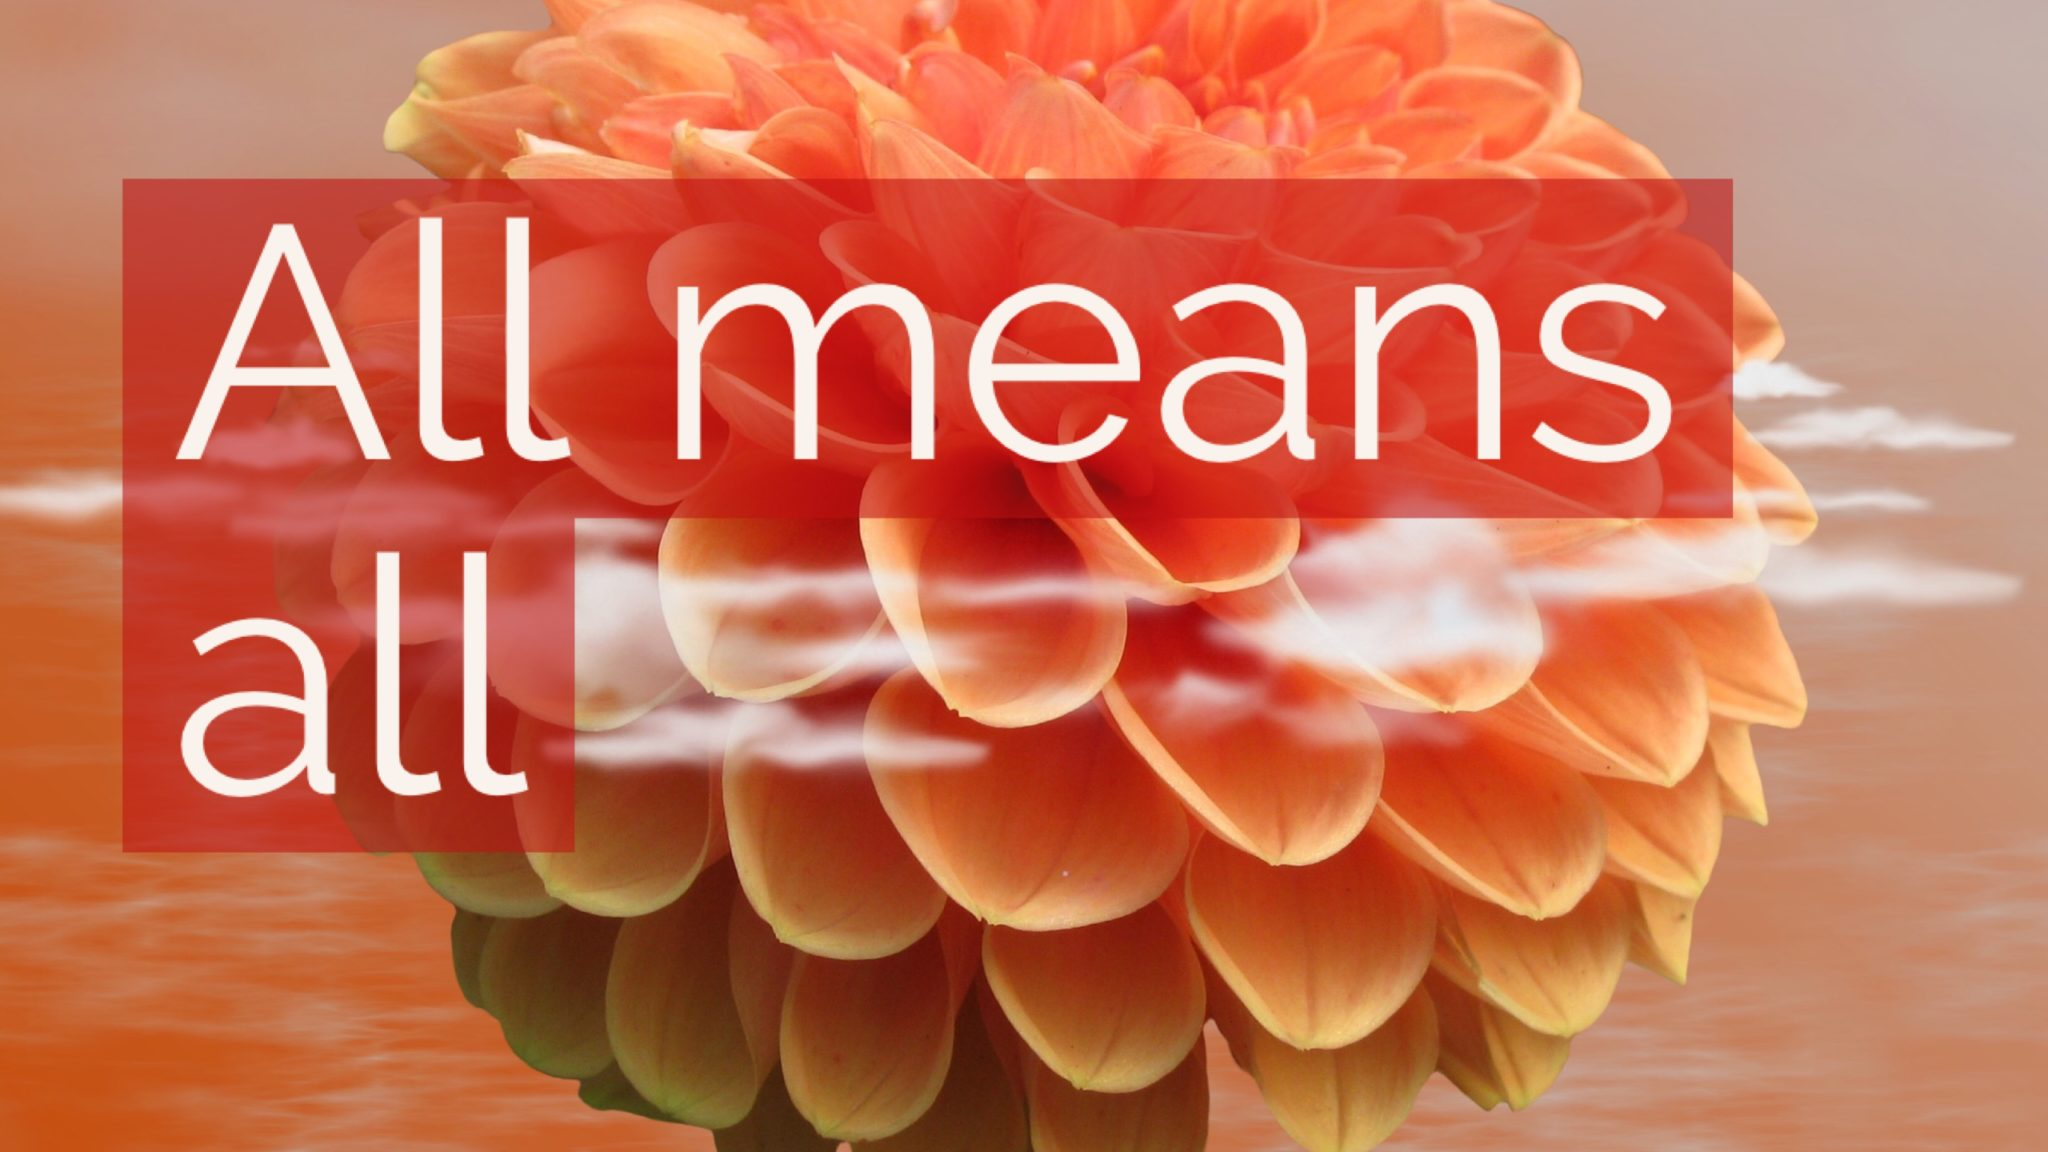 All means all with tom hierck